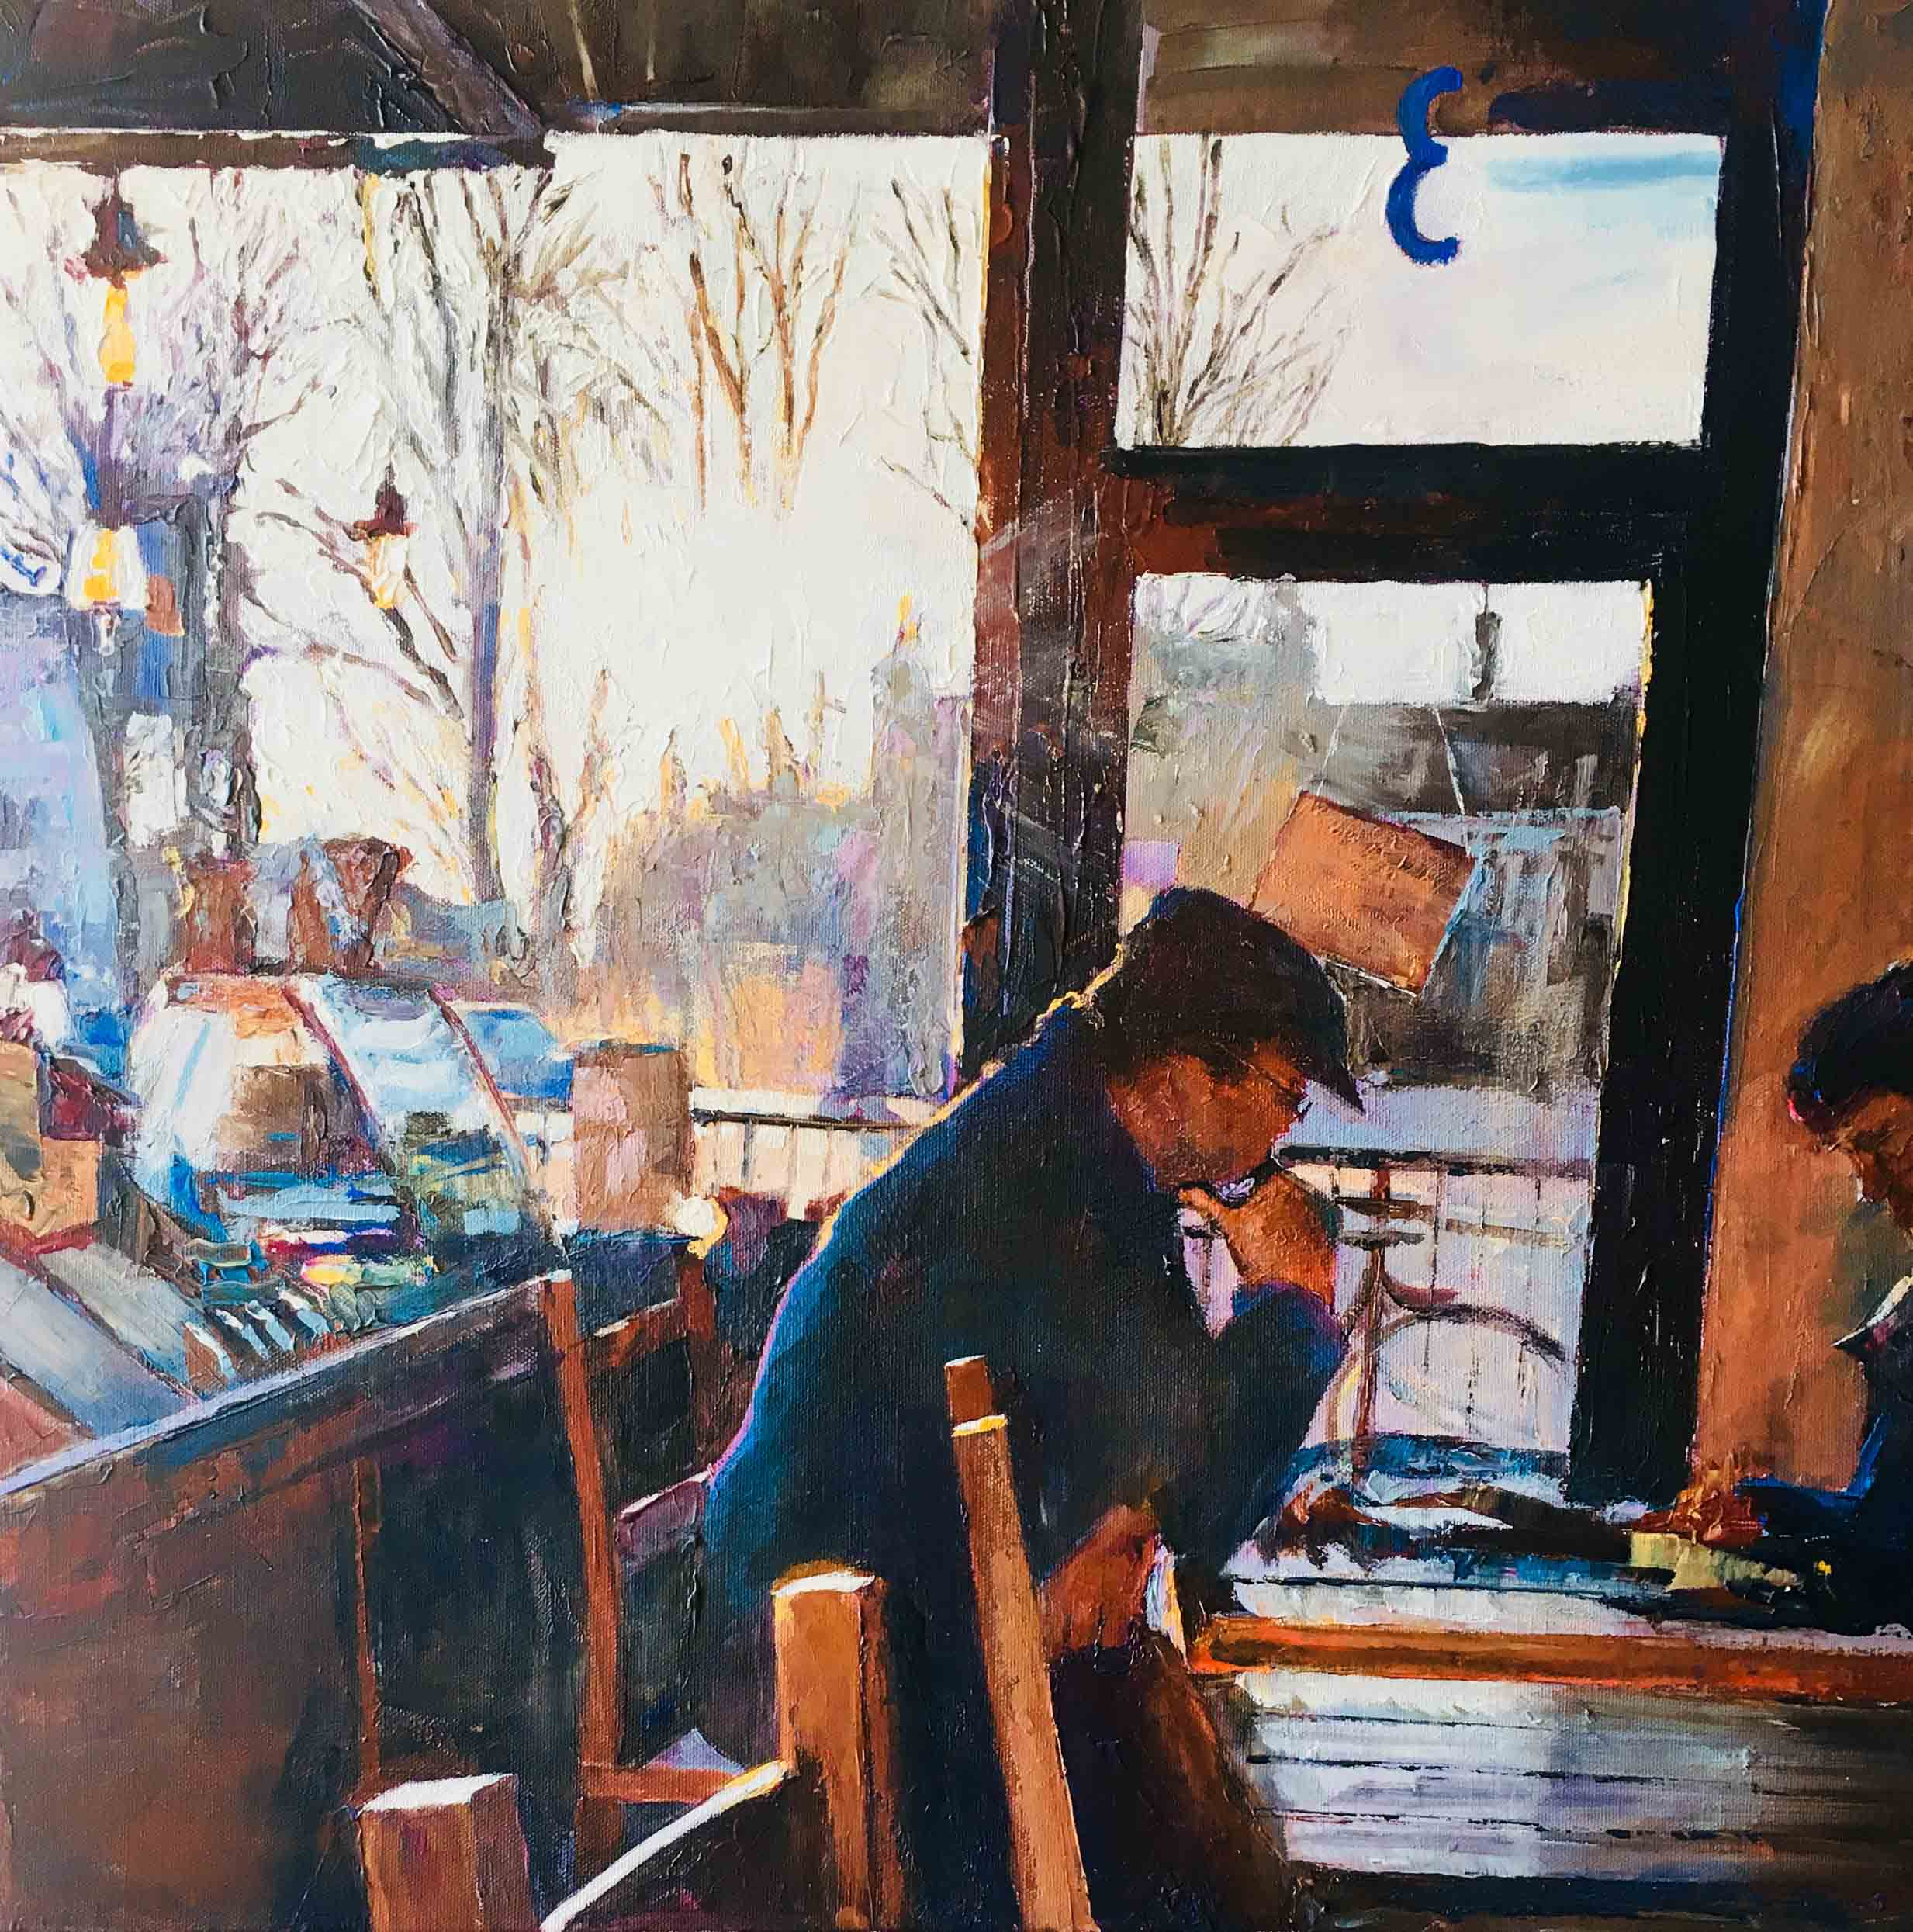 Cafe Contemplations. Hilary Burnett Cooper. Jackson's Painting Prize.